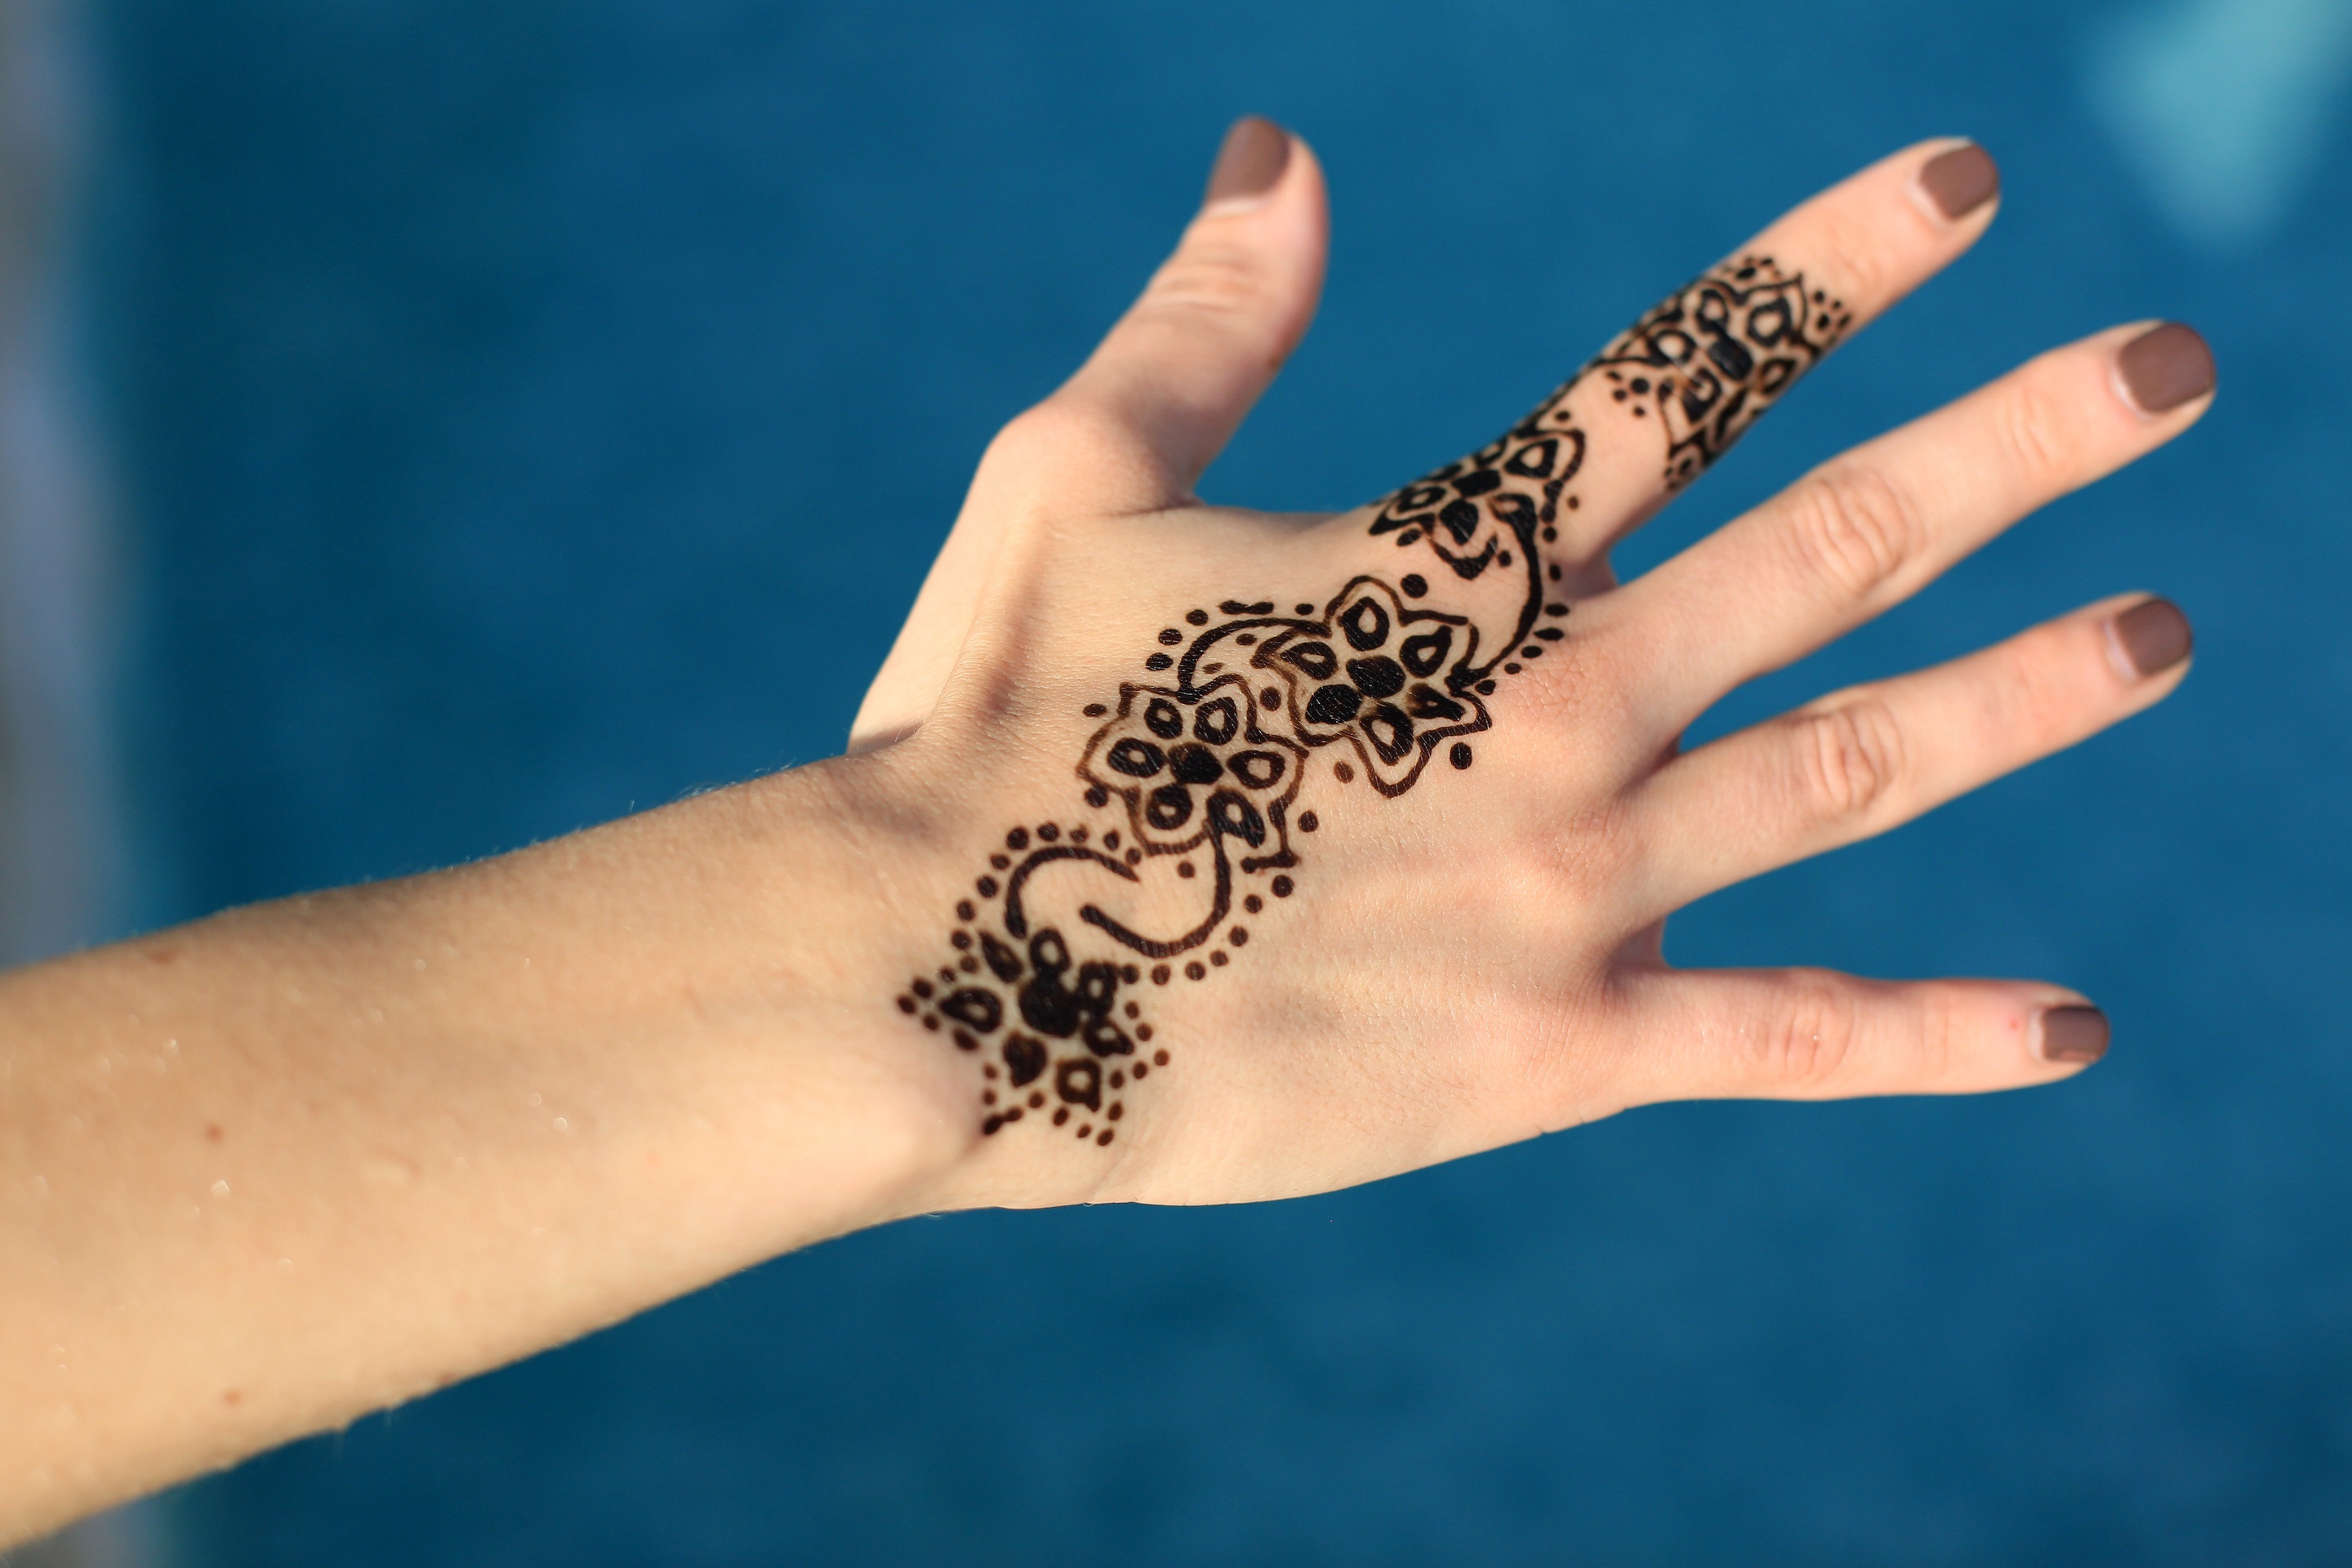 Handy oceanic blue background for the mehndi!